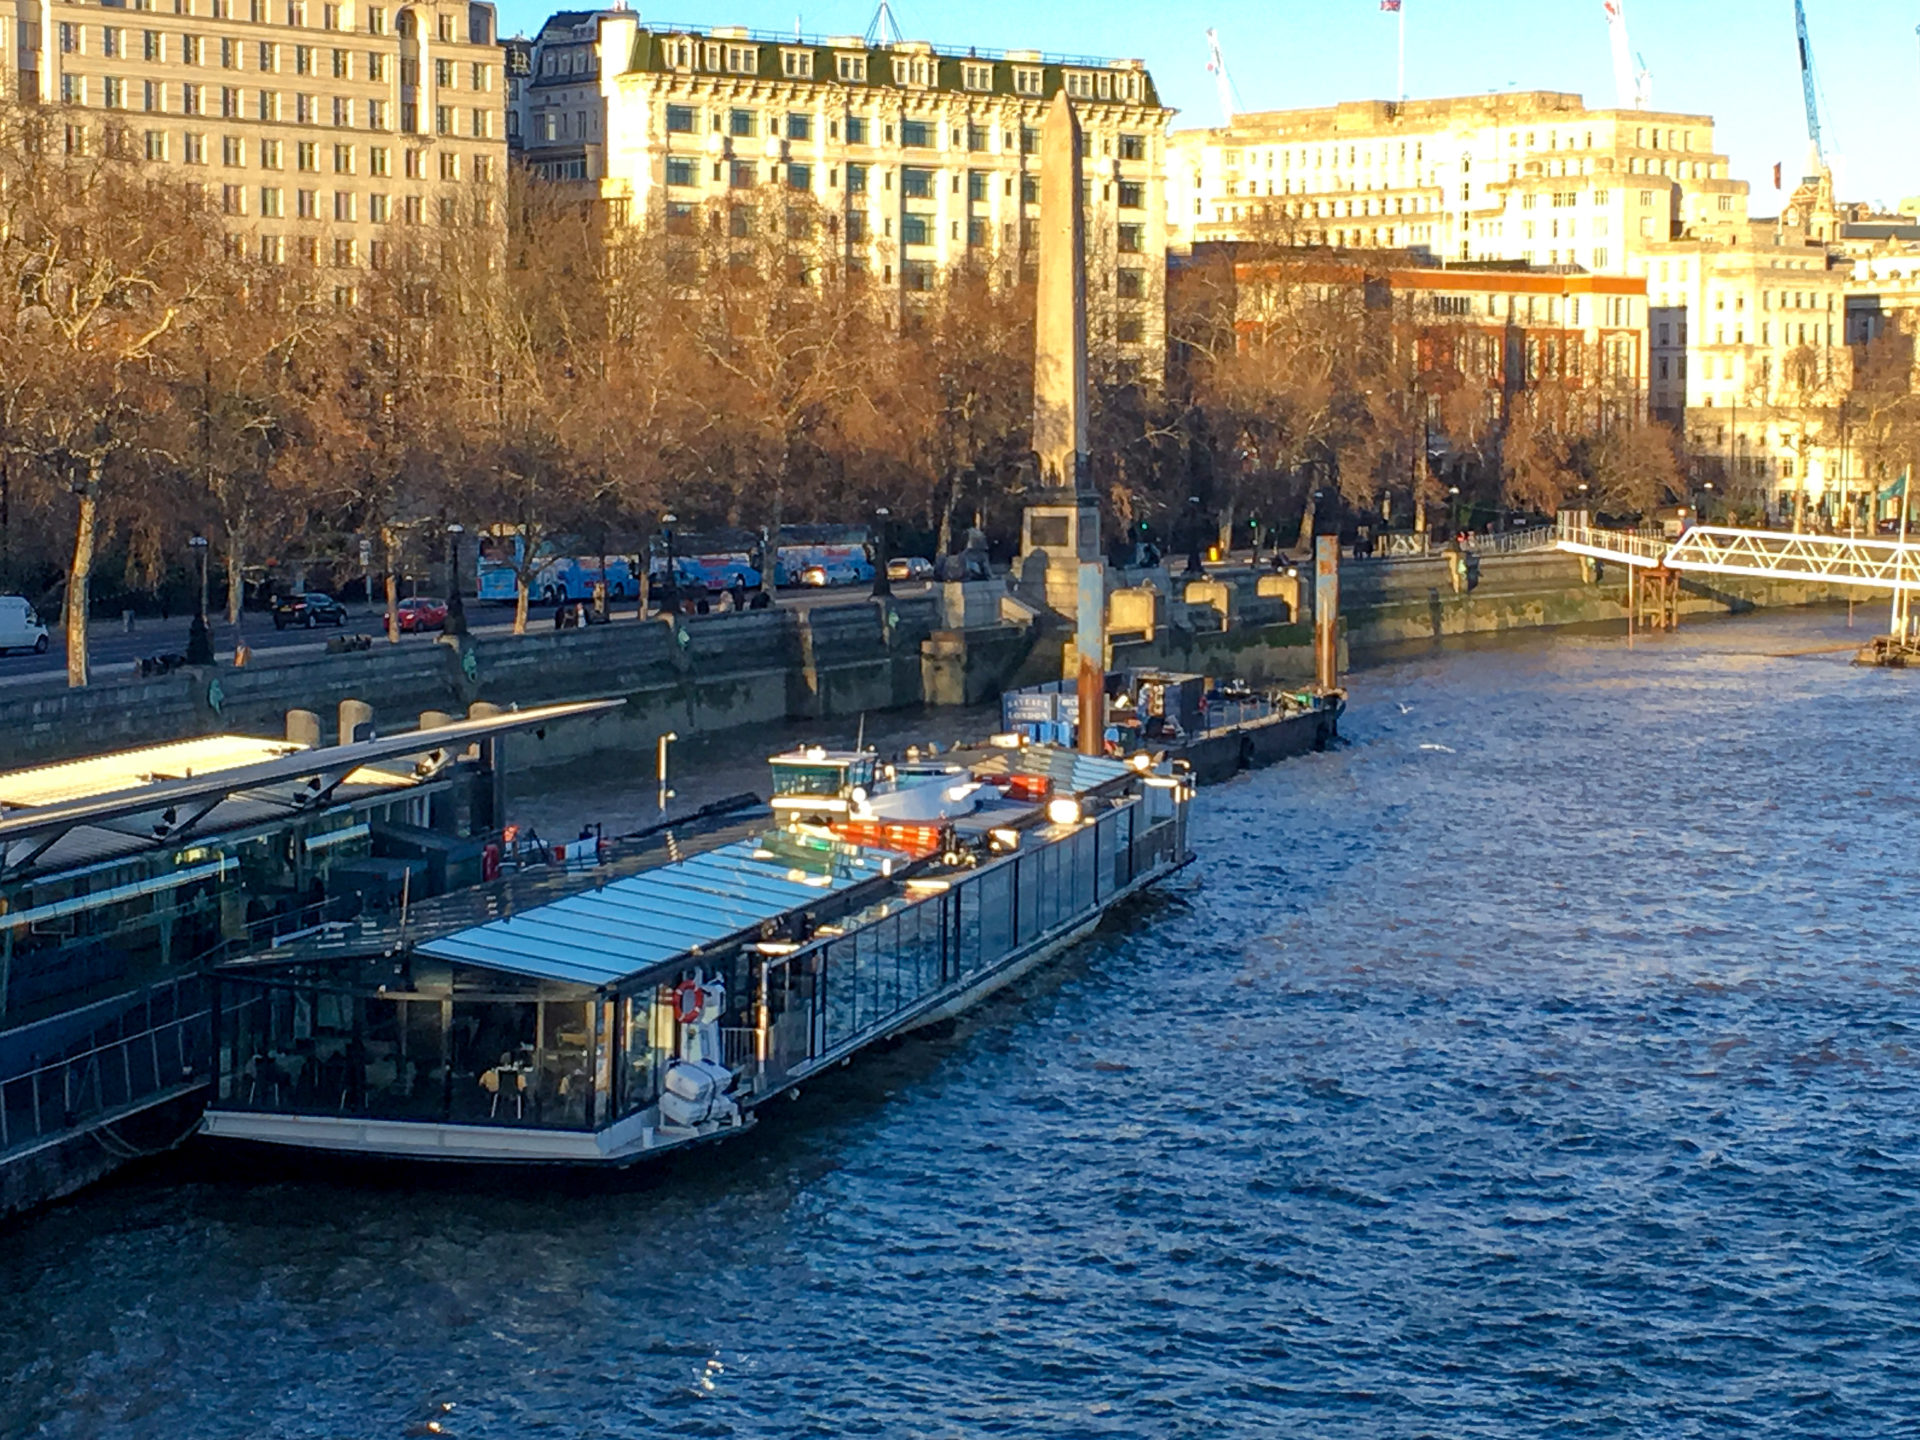 The Symphony -Bateaux London Cruise